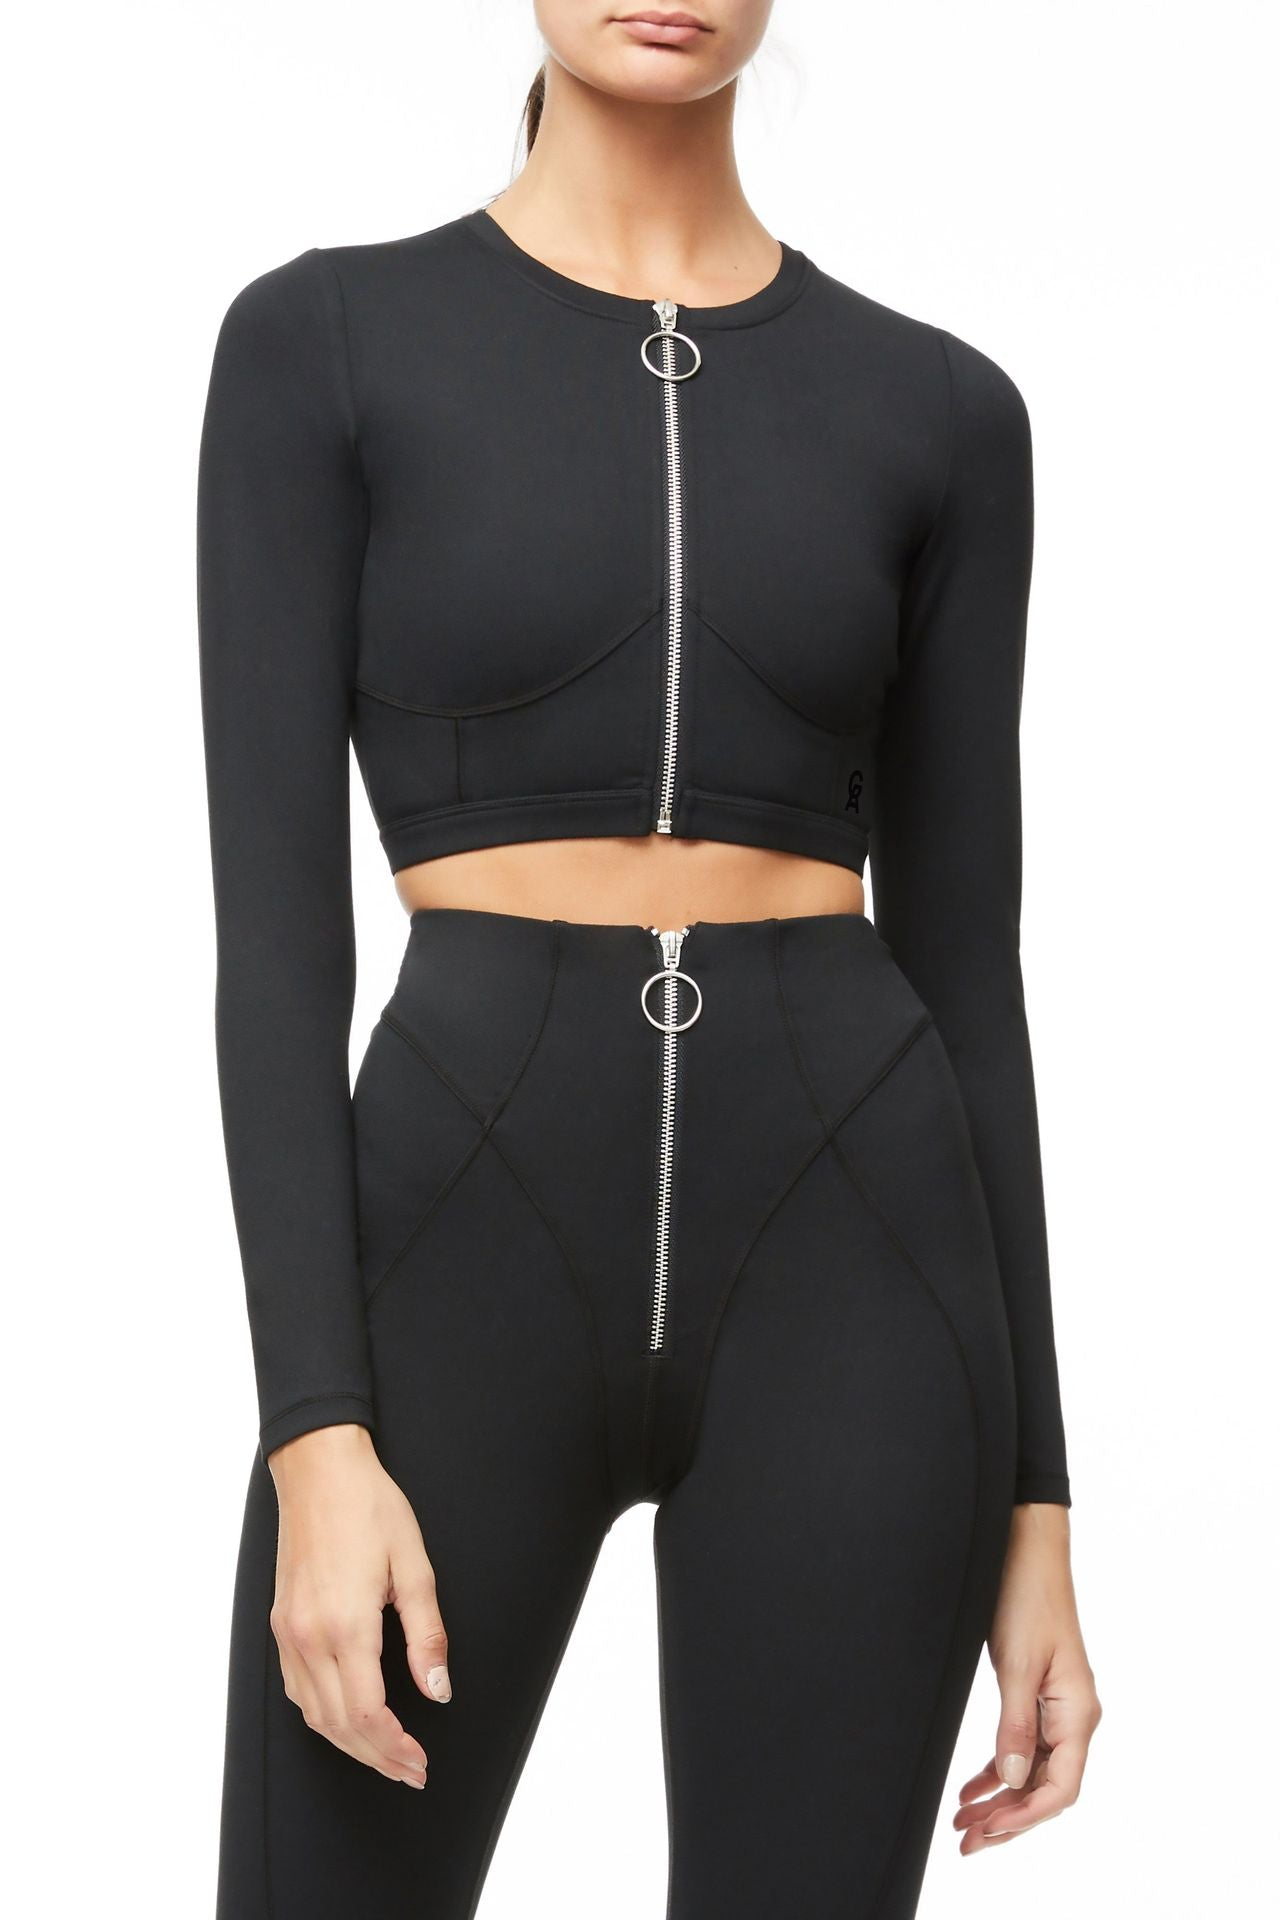 The Warrior Zip Crop Top